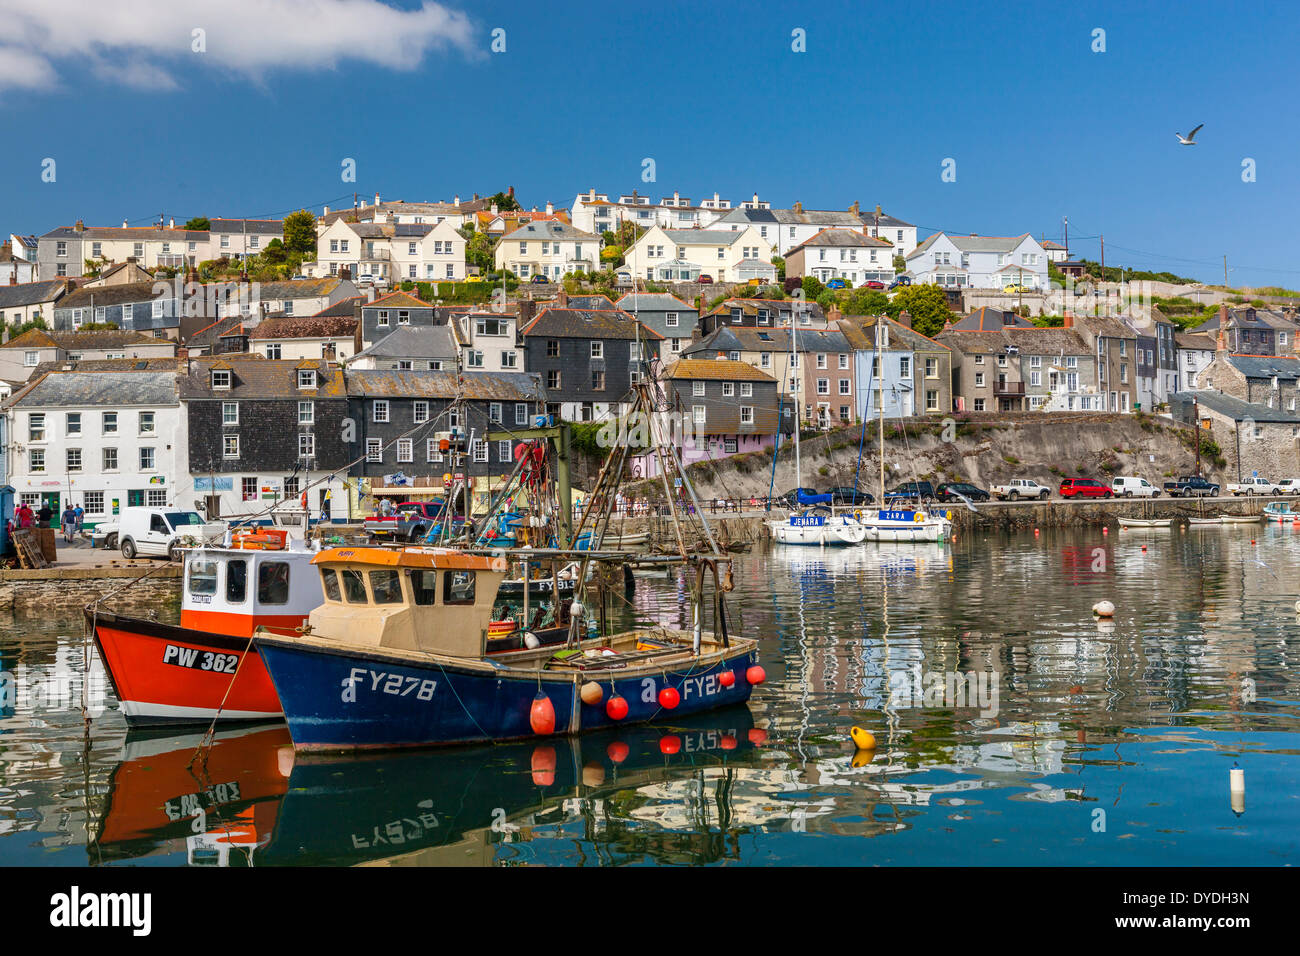 Sailing boats in Mevagissey harbour. - Stock Image